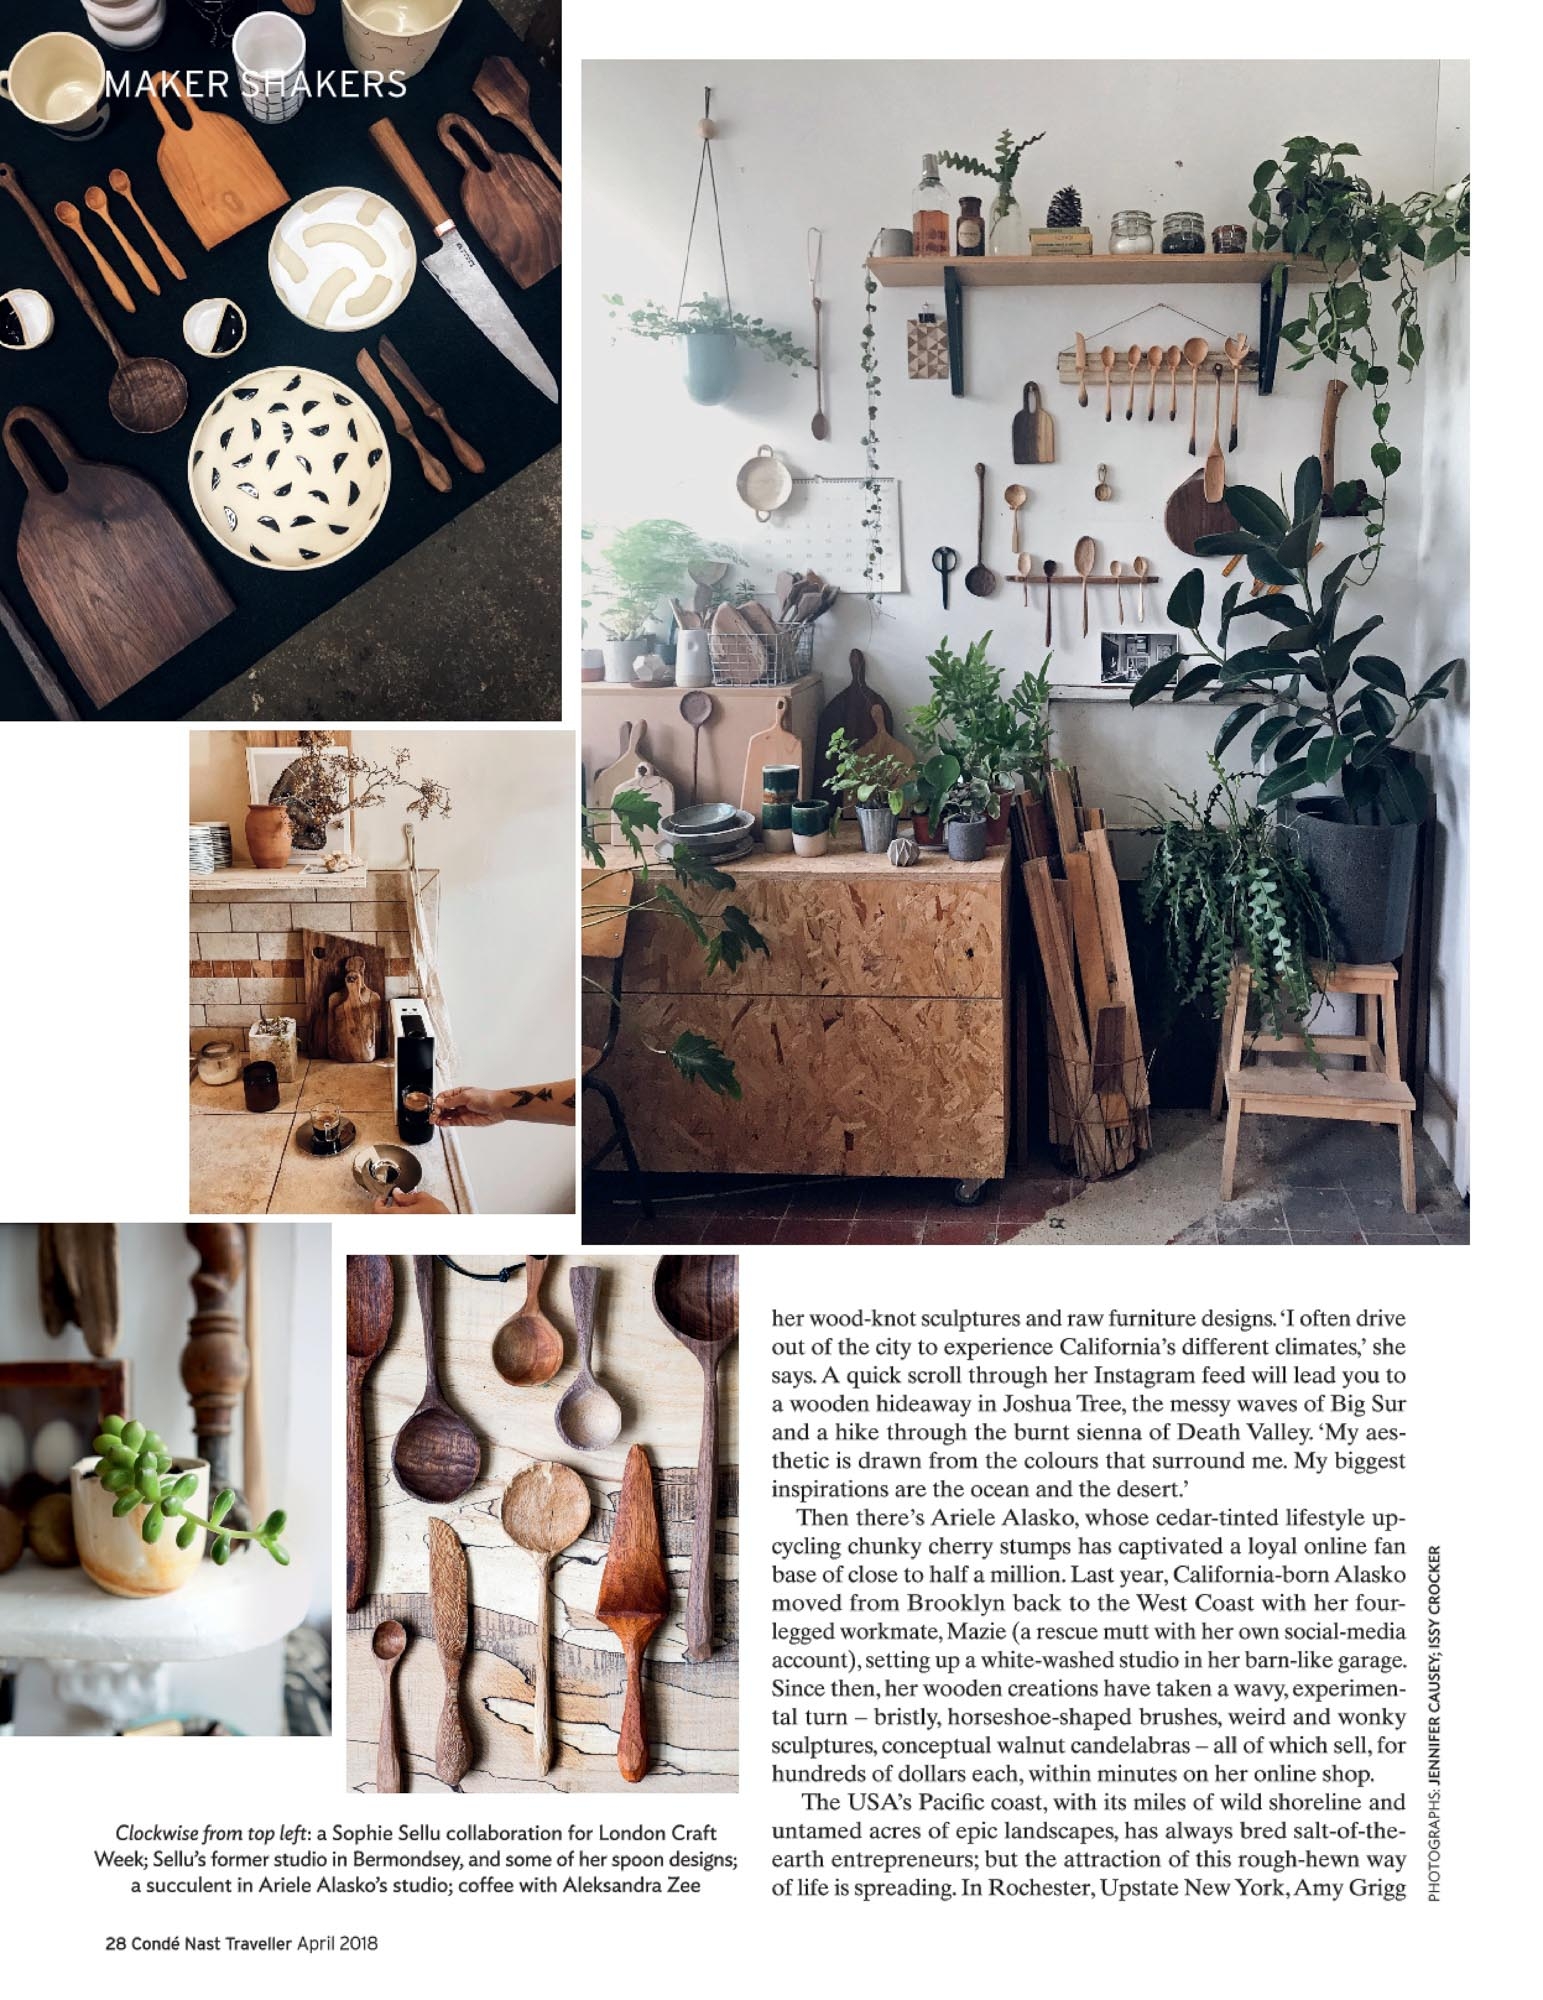 Marnie Hawson, Melbourne lifestyle photography for Conde Nast Traveller and Erin Malloy, woodworker